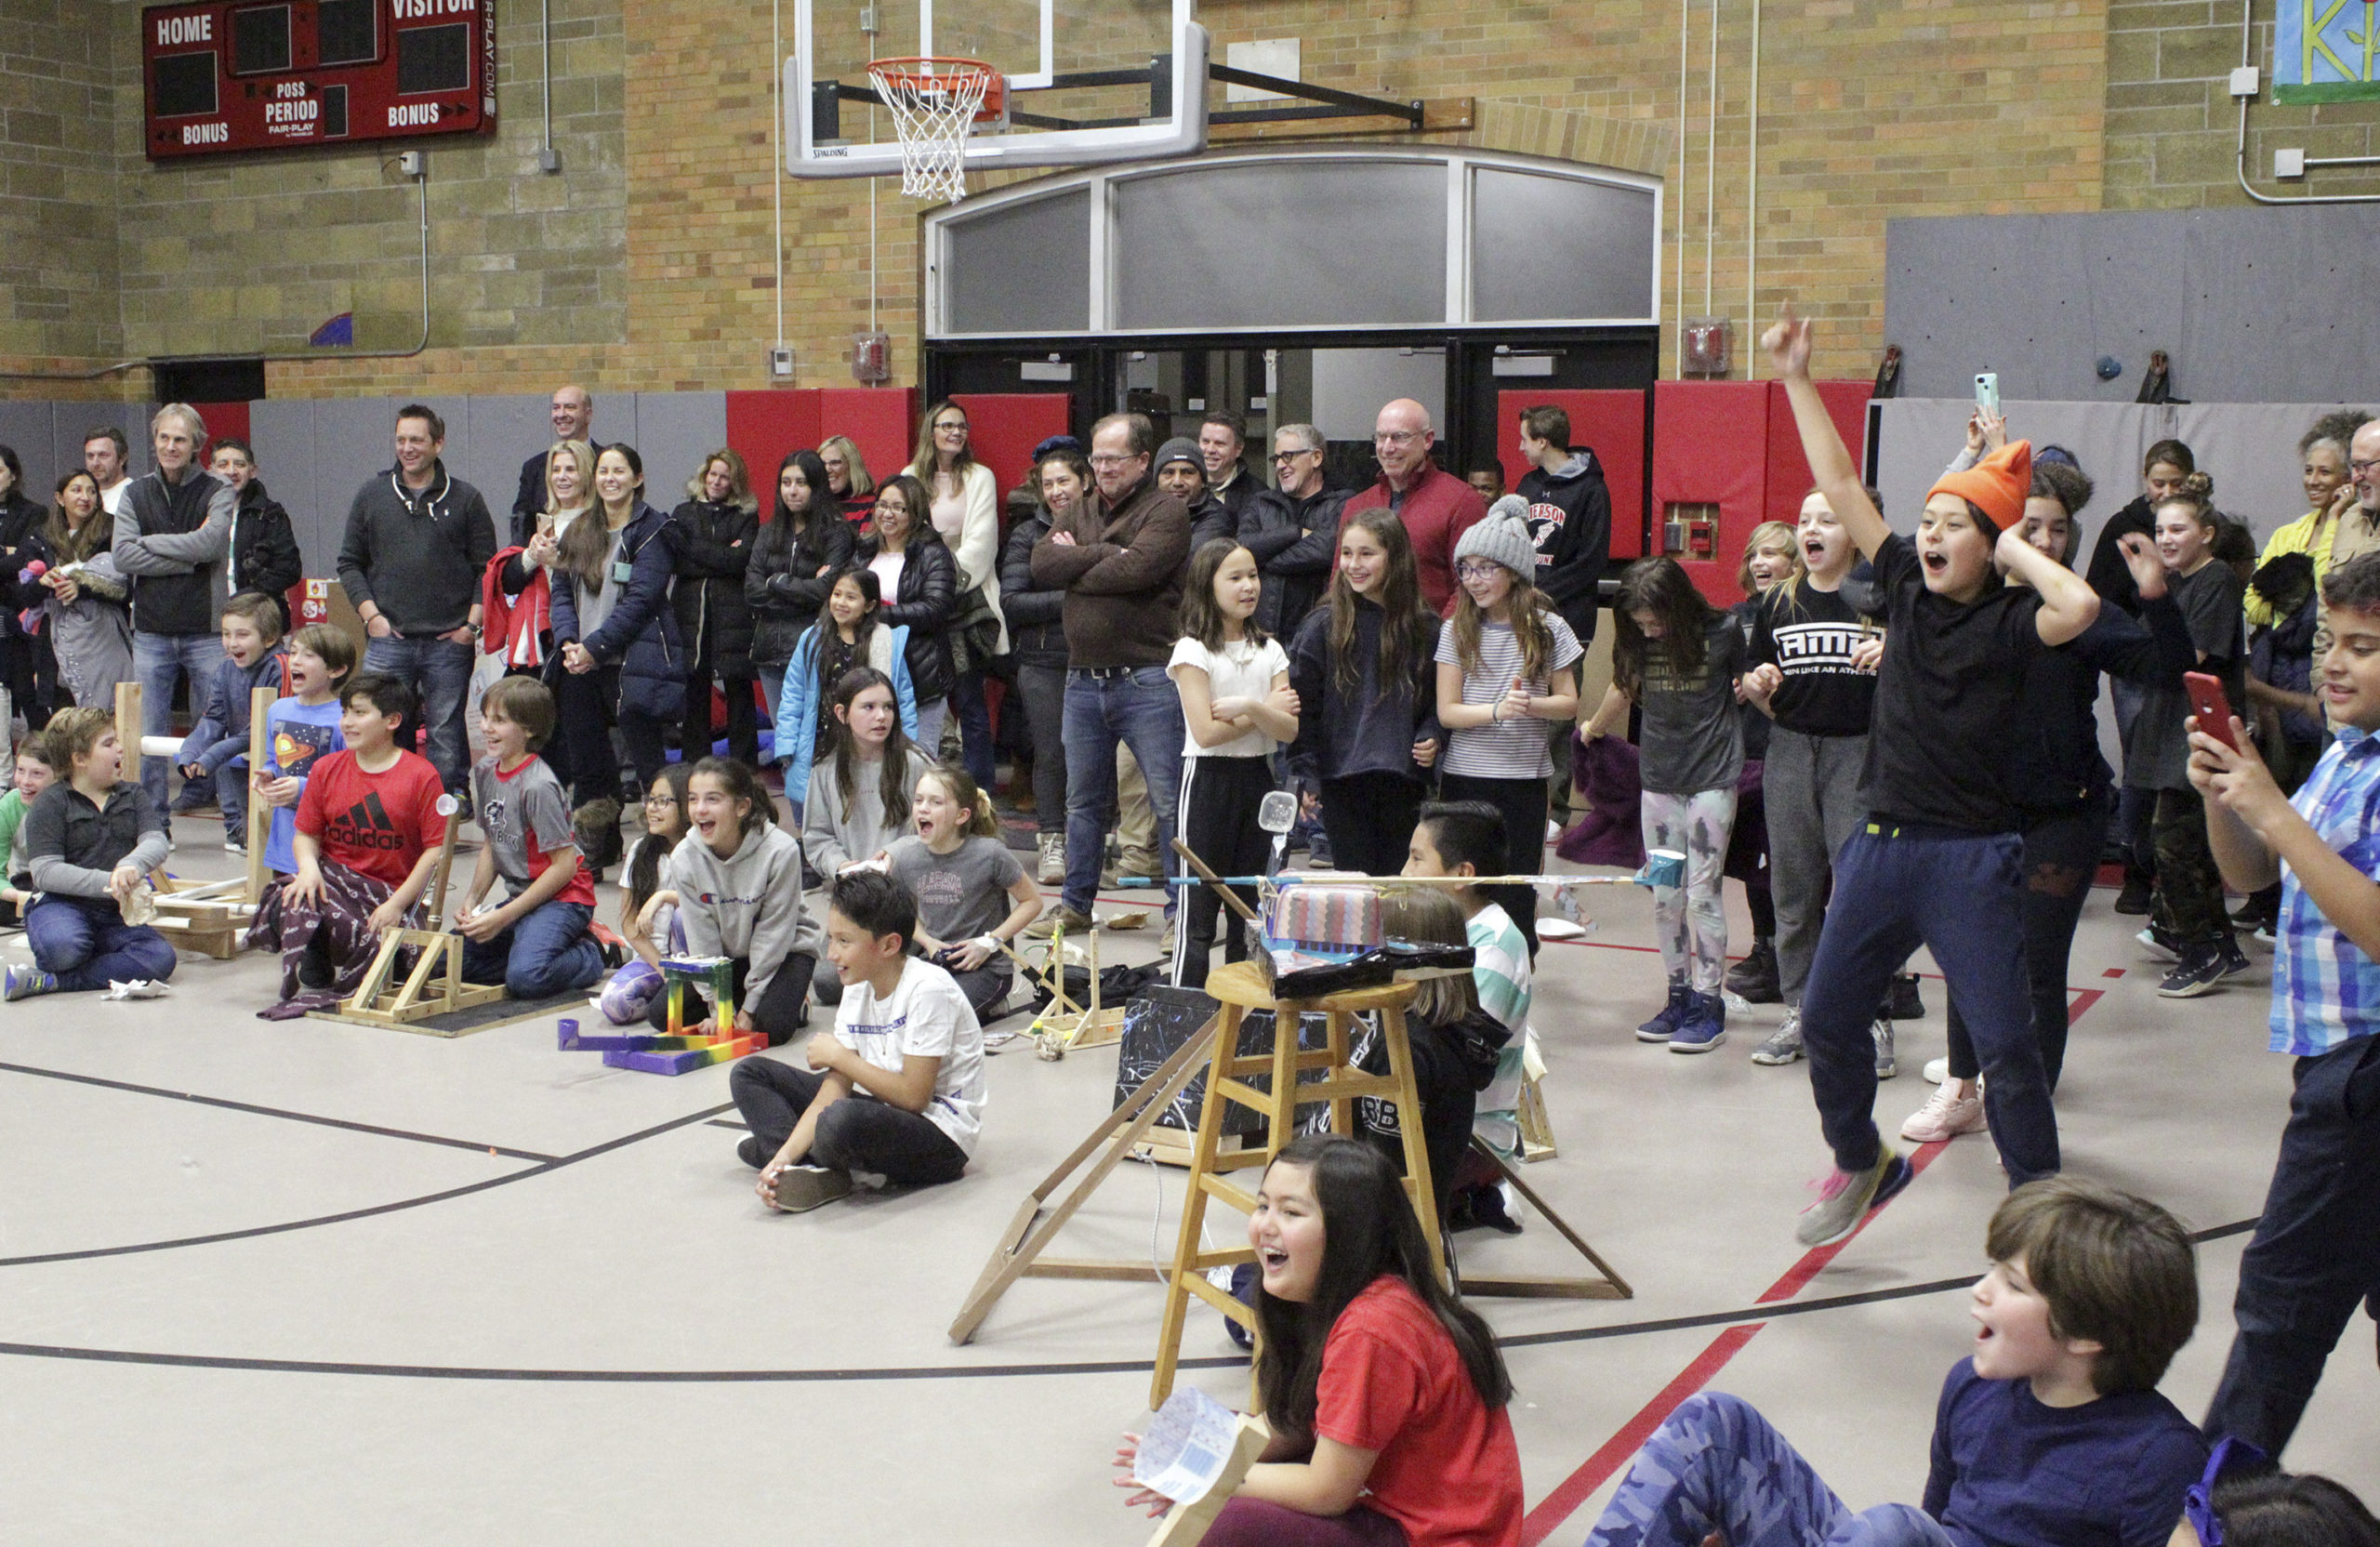 The Sag Harbor Elementary School hosted its fourth and fifth grade Physics Fair last week. The fifth grade class worked in teams to build catapults and compete to see which team's catapult could launch the farthest.    TOM KOCHIE